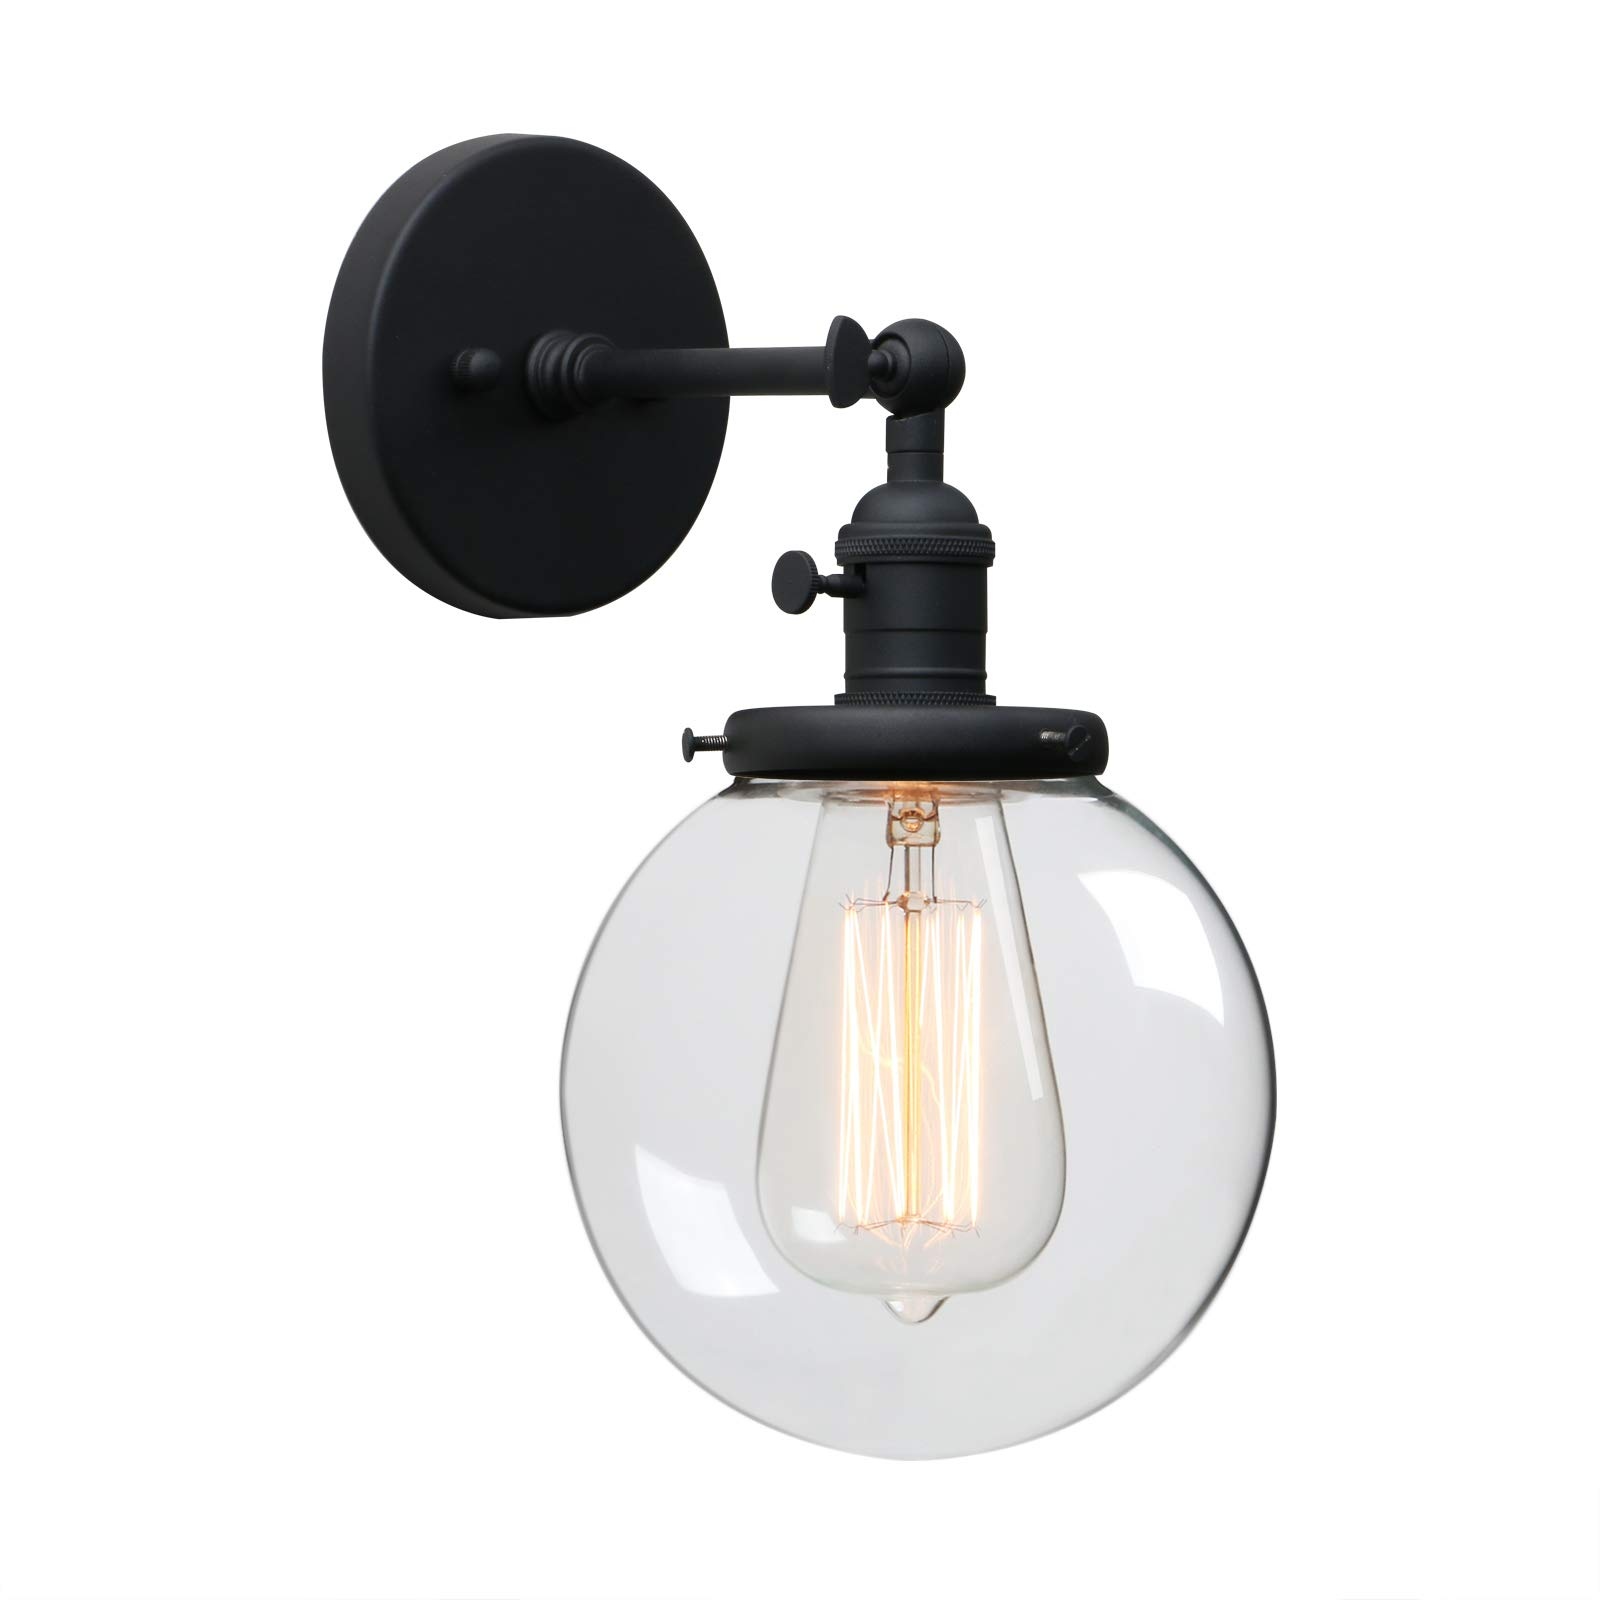 Phansthy Single Industrial Wall Sconce with Globe Lampshade (Black)